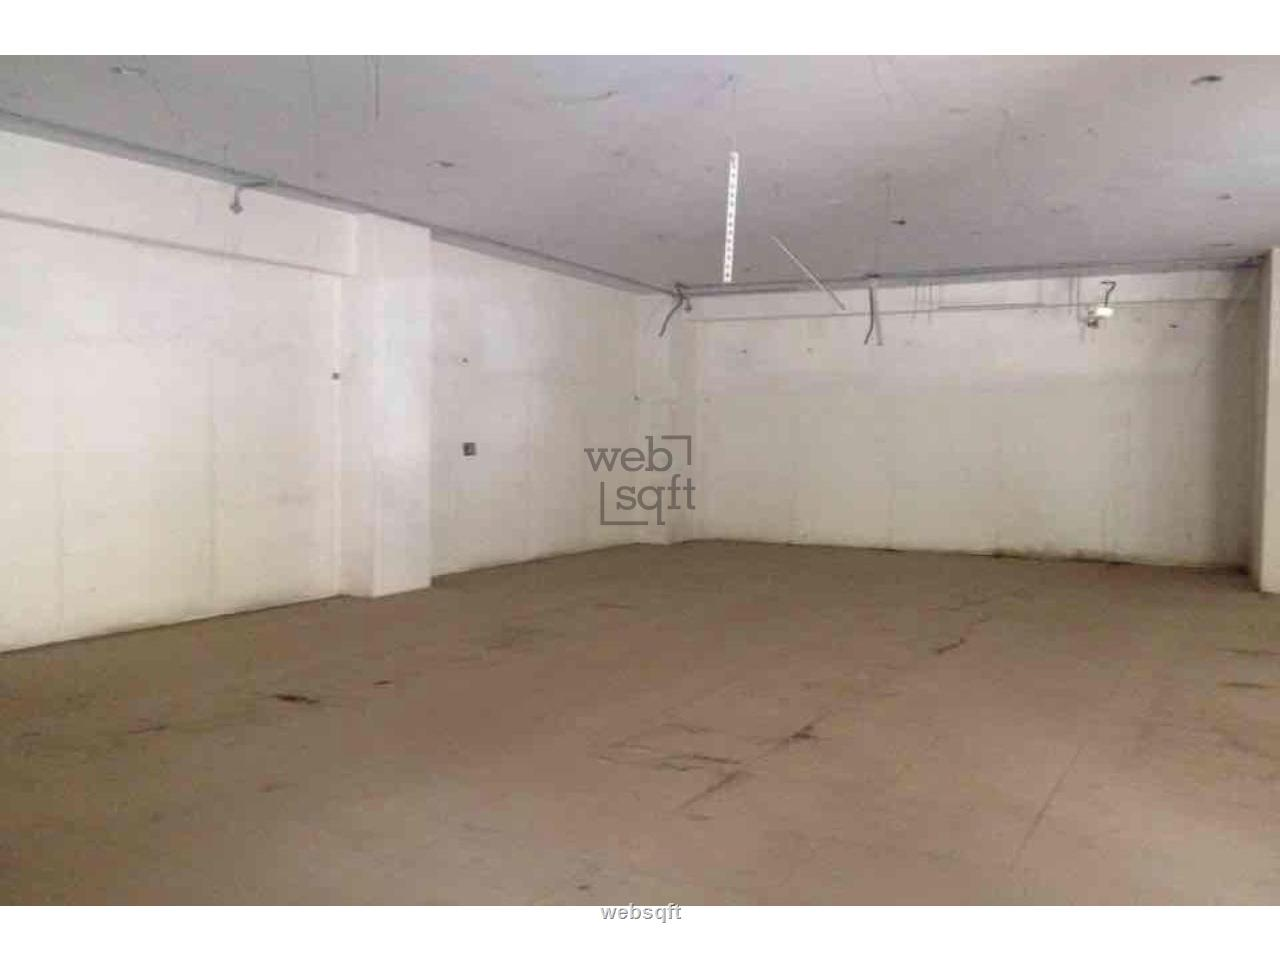 Websqft - Commercial Retail showroom shop - Property for Sale - in 1100Sq-ft/Sikh Village  at Rs 10175200